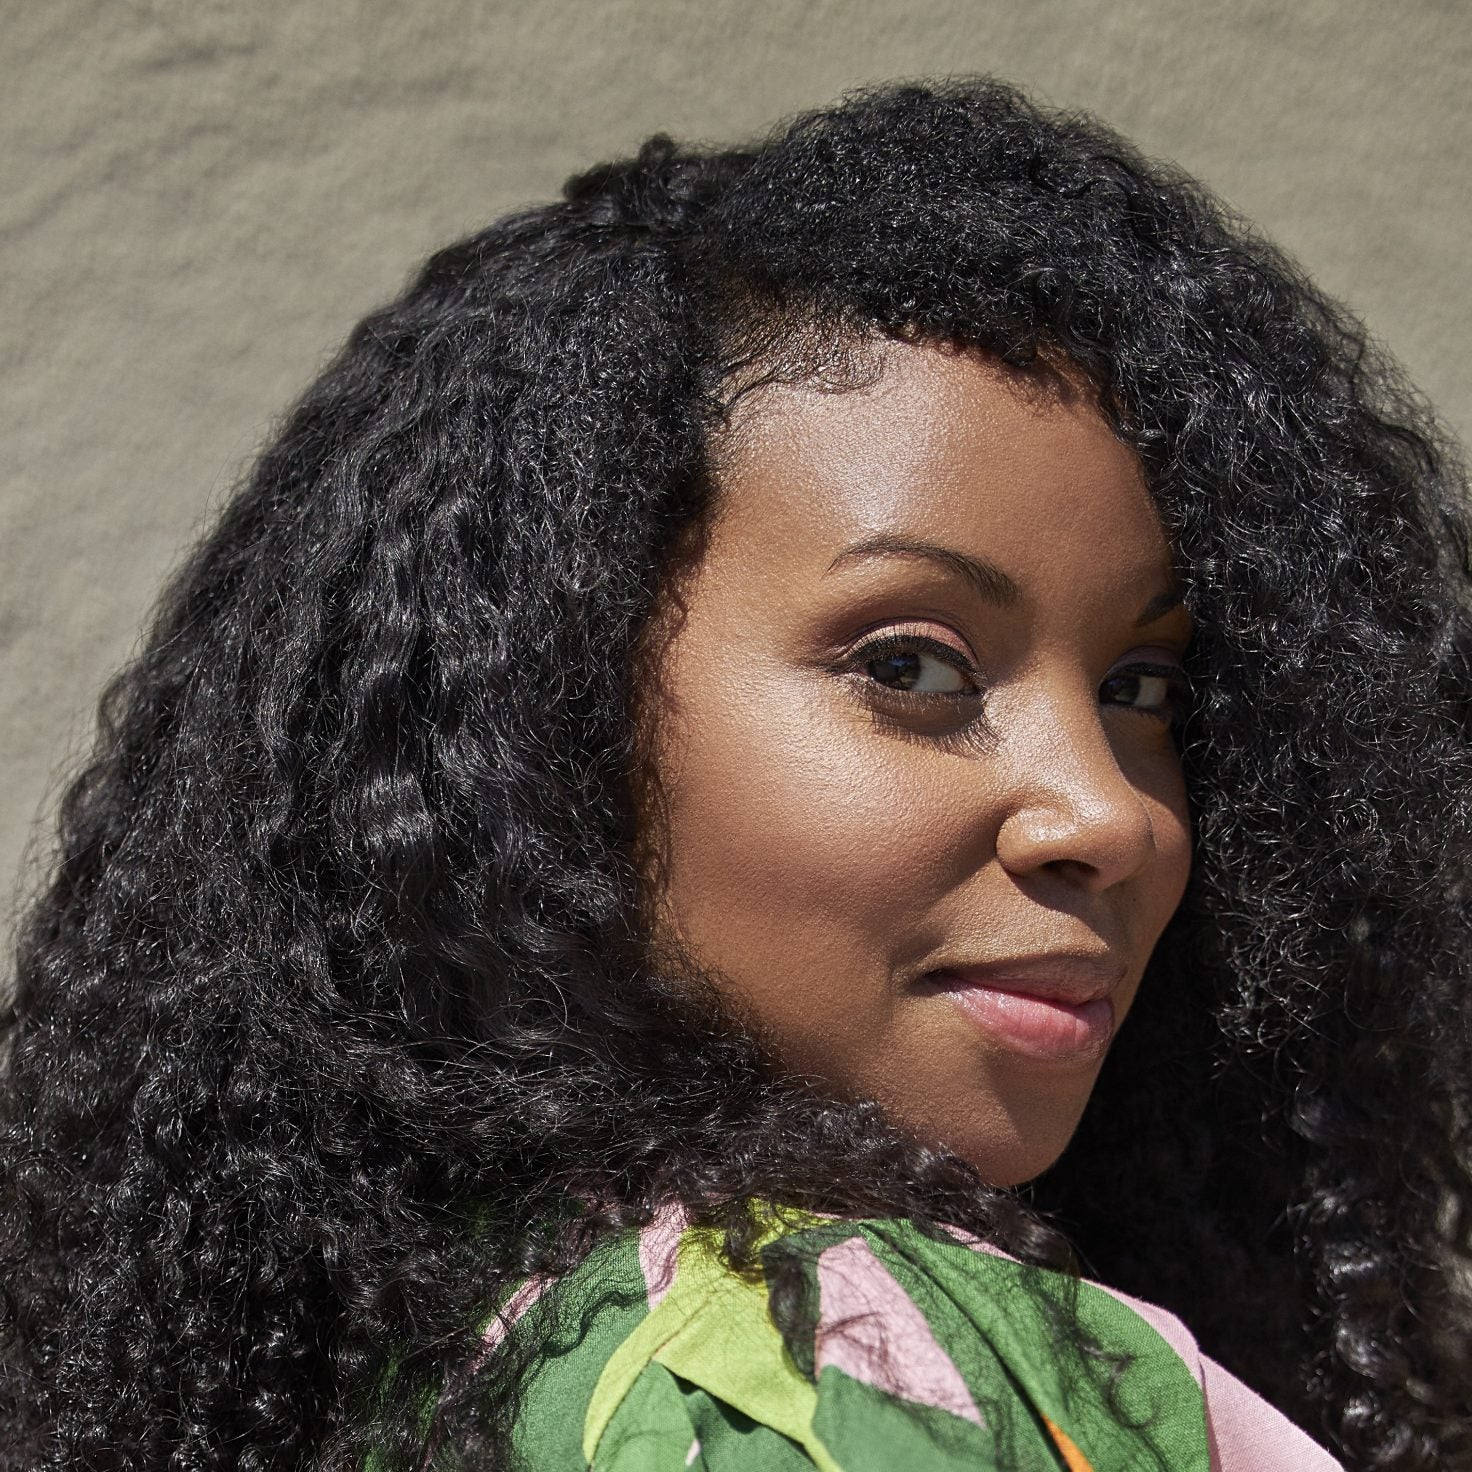 Producer Codie Elaine Oliver On Why She Won't Stop Championing Black Love